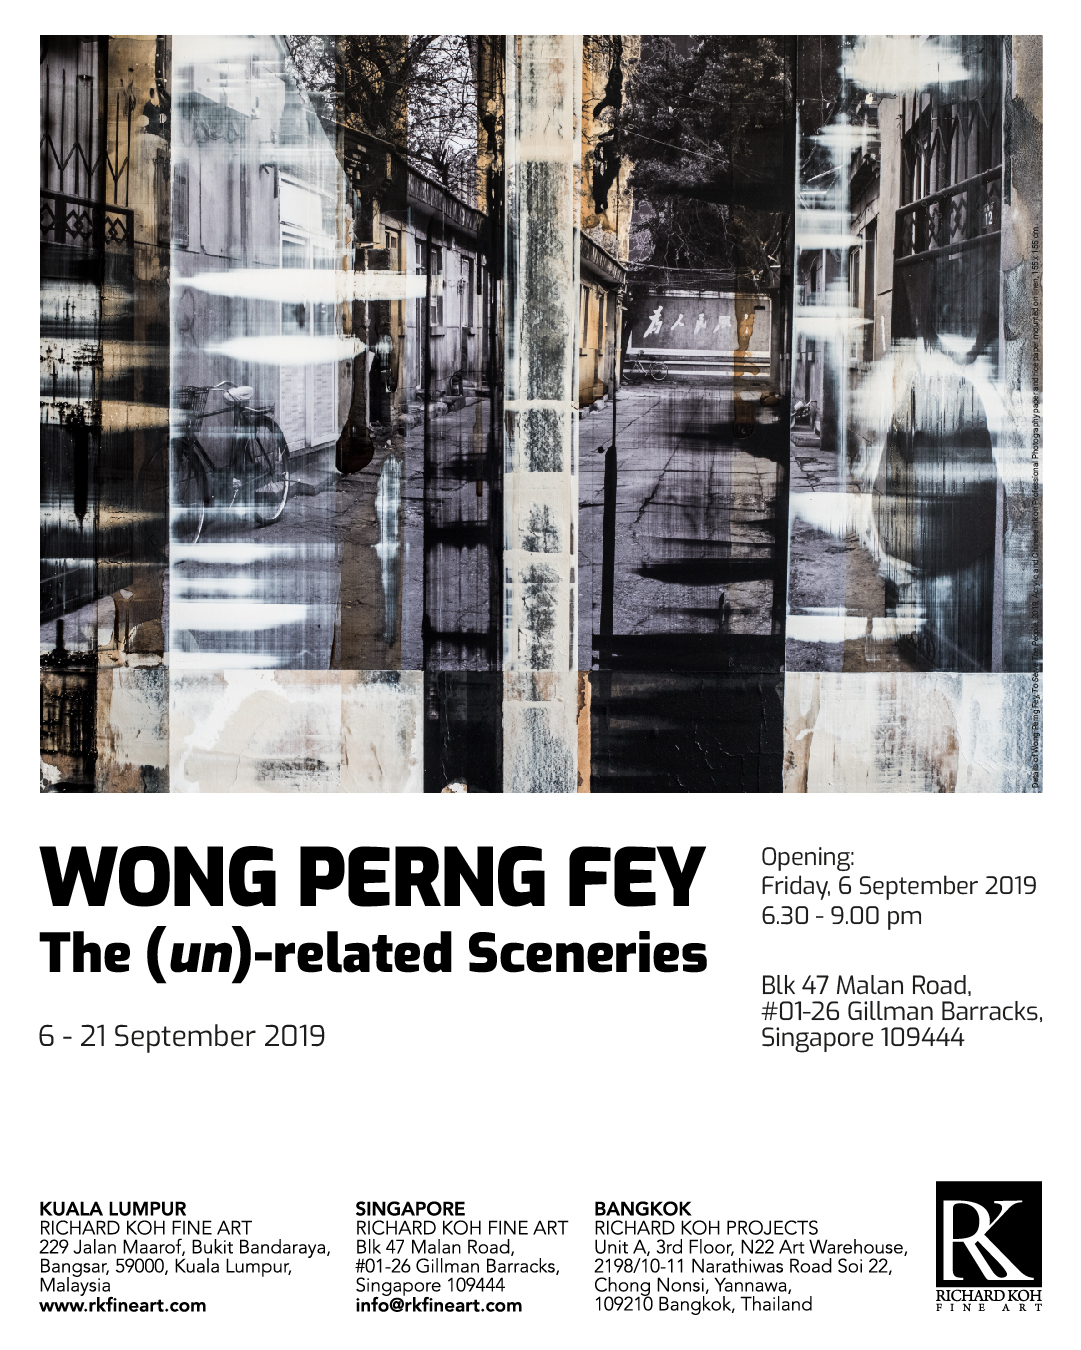 Wong Perng Fey – The (un)-related Sceneries